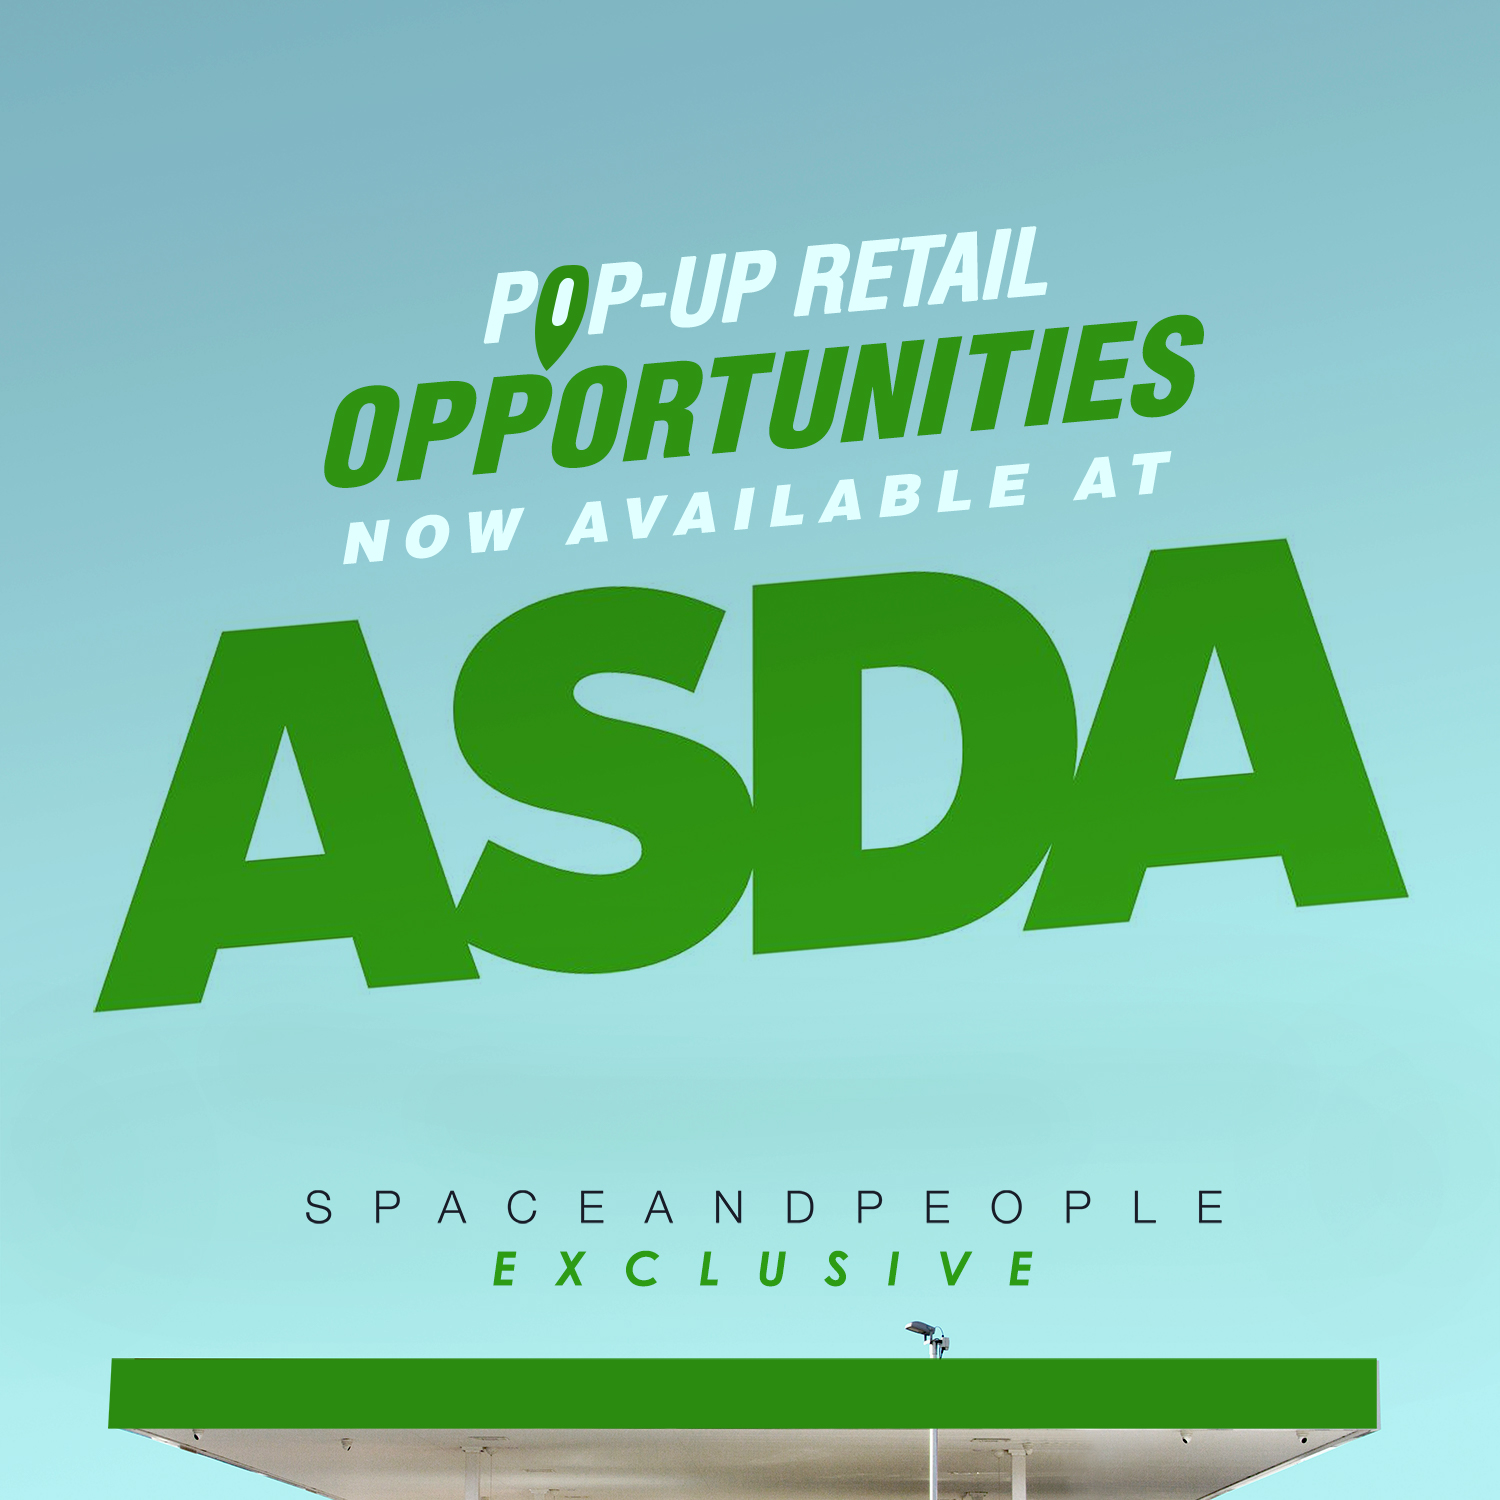 Pop-Up Retail Opportunities at Asda SpaceandPeople